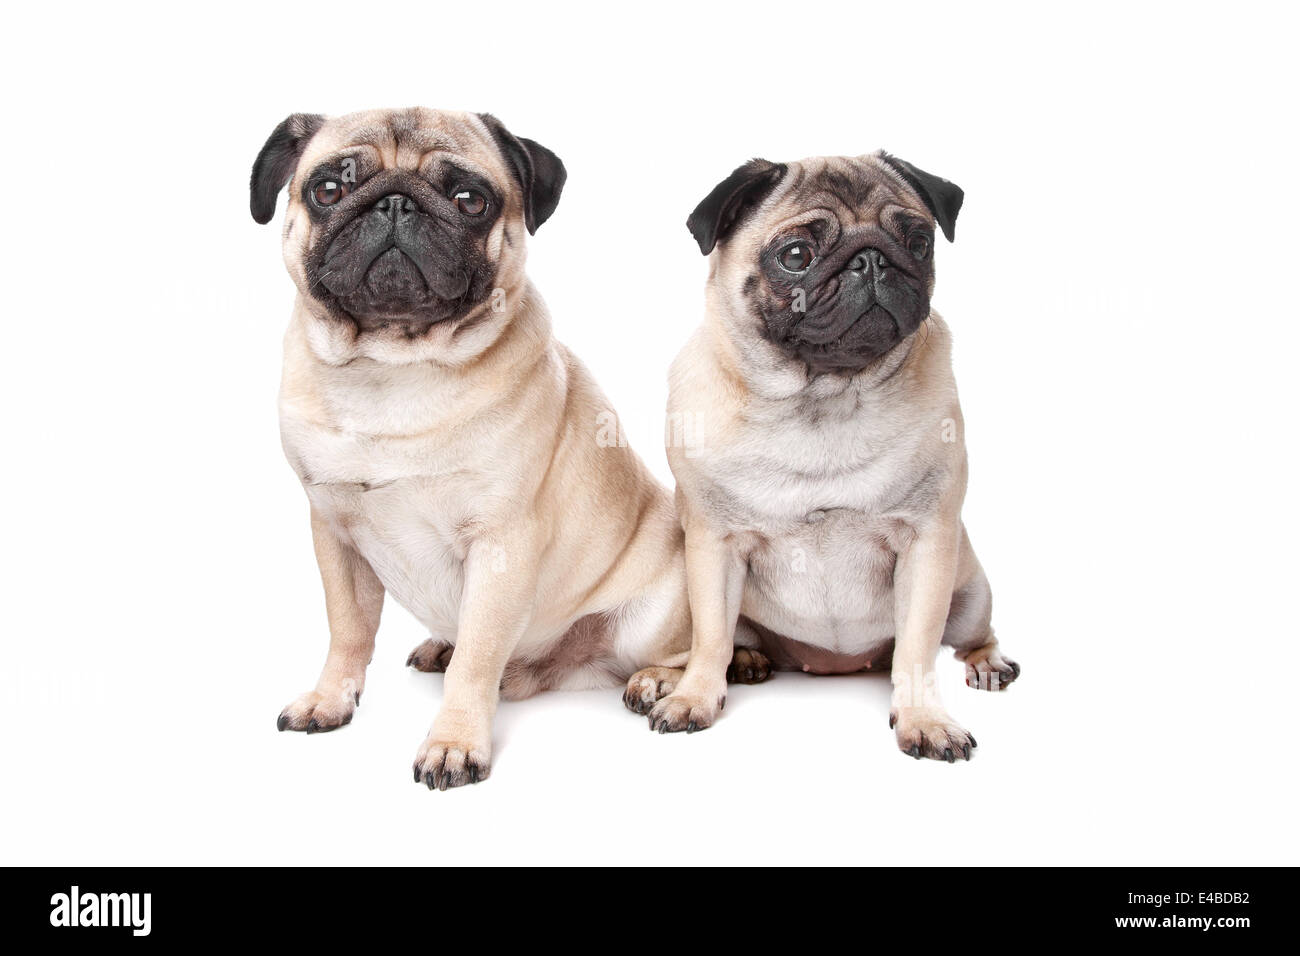 two pug dogs - Stock Image